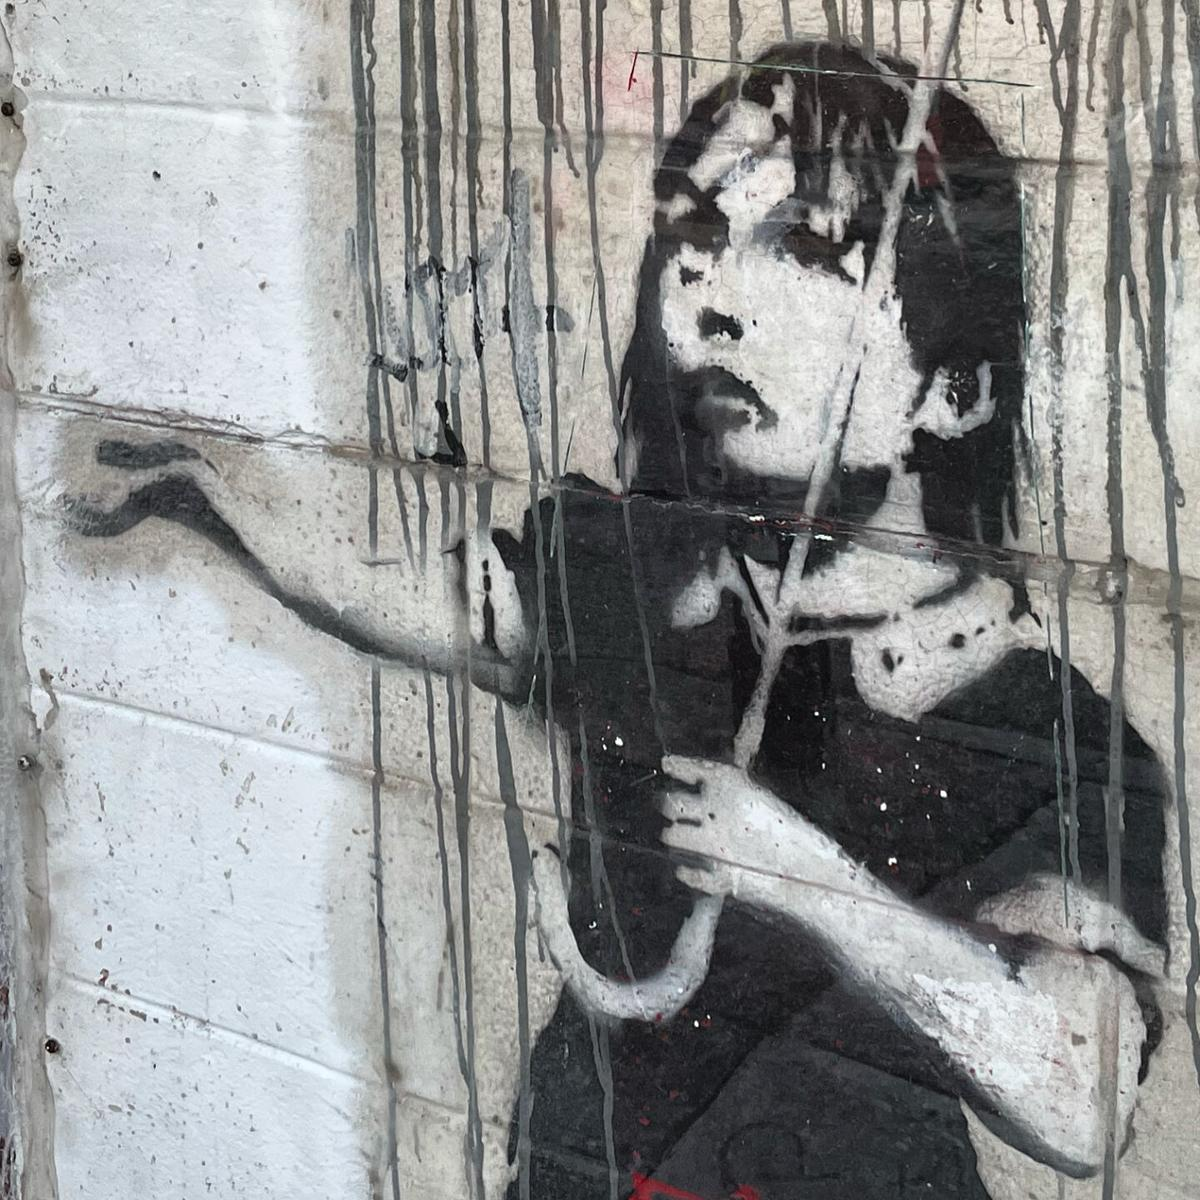 A Banksy graffiti painting vandalized on Christmas was restored by fast-acting artists 1.jpeg